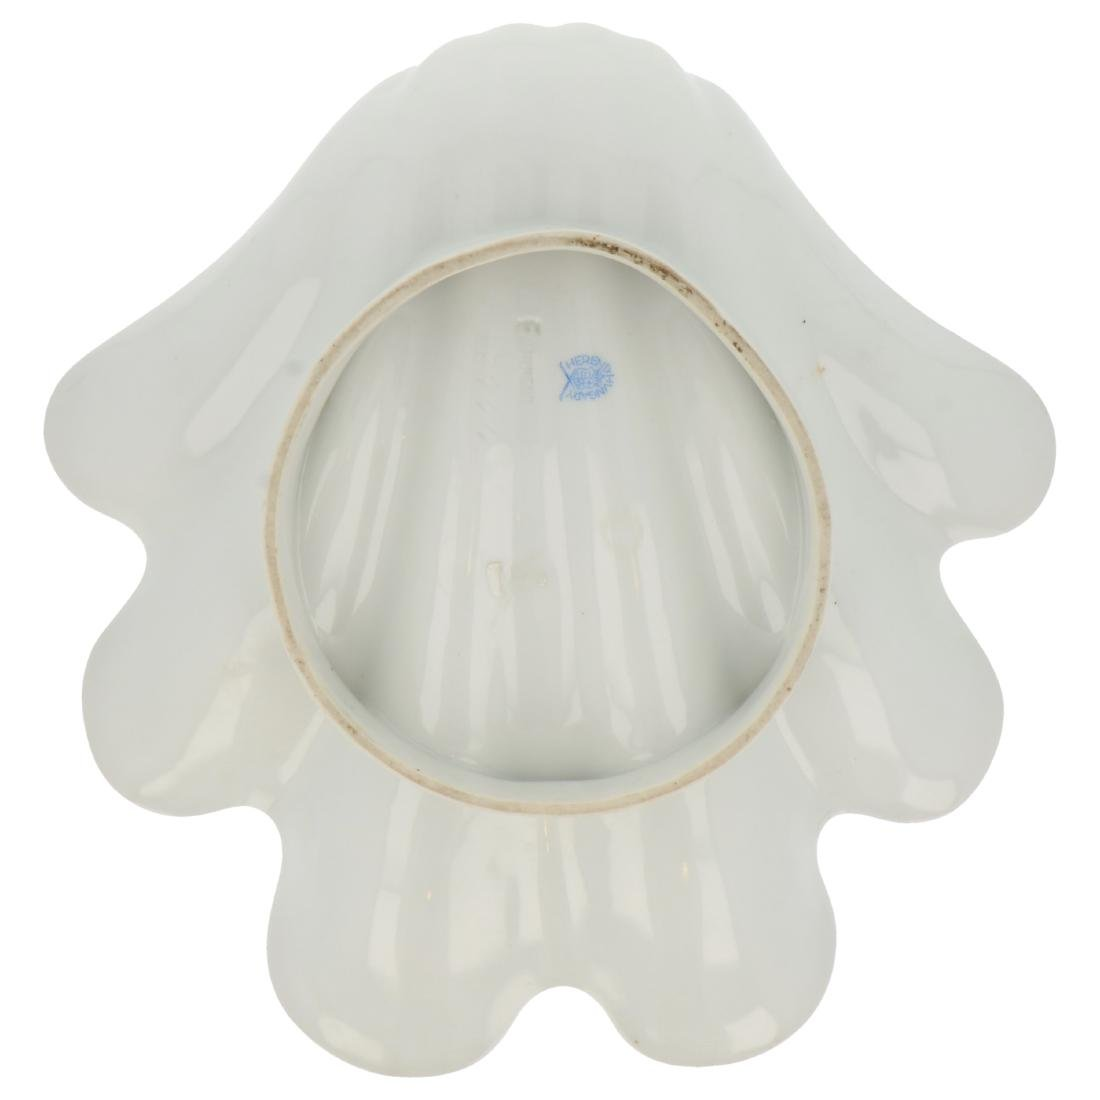 Herend porcelain shell plate. - 2